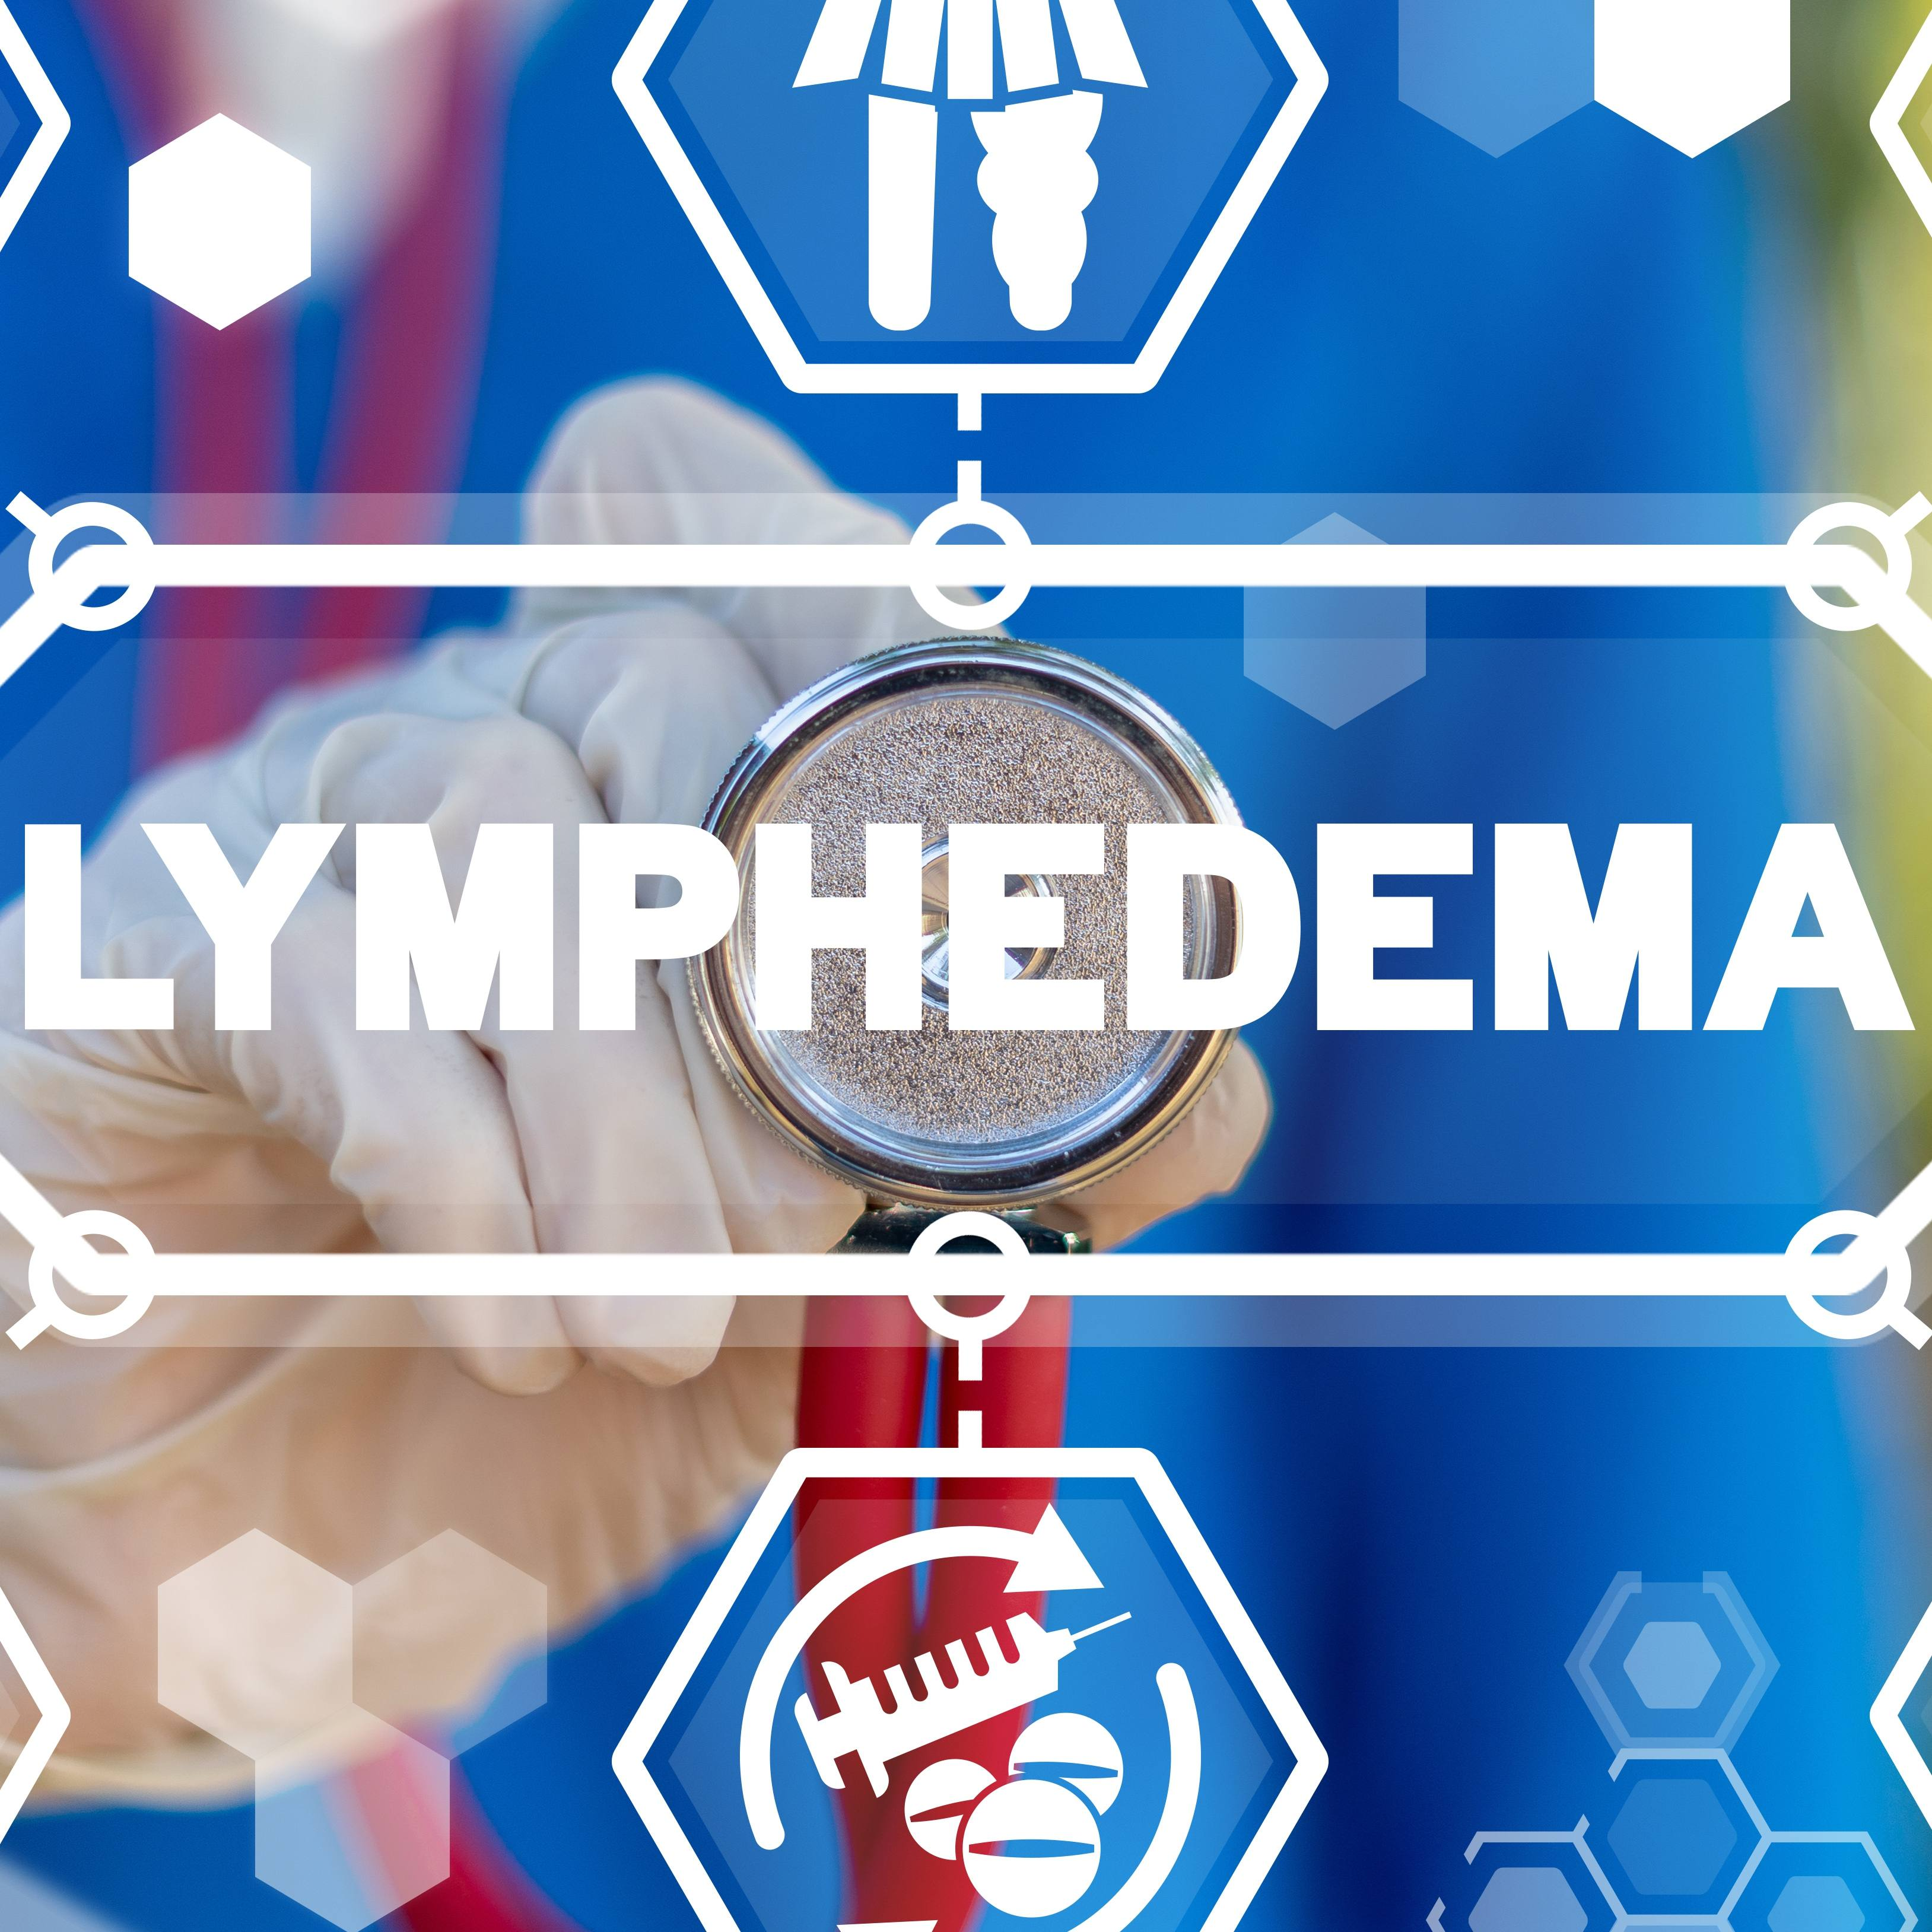 word graphic with medical icons and symbols surrounding the word LYMPHEDEMA